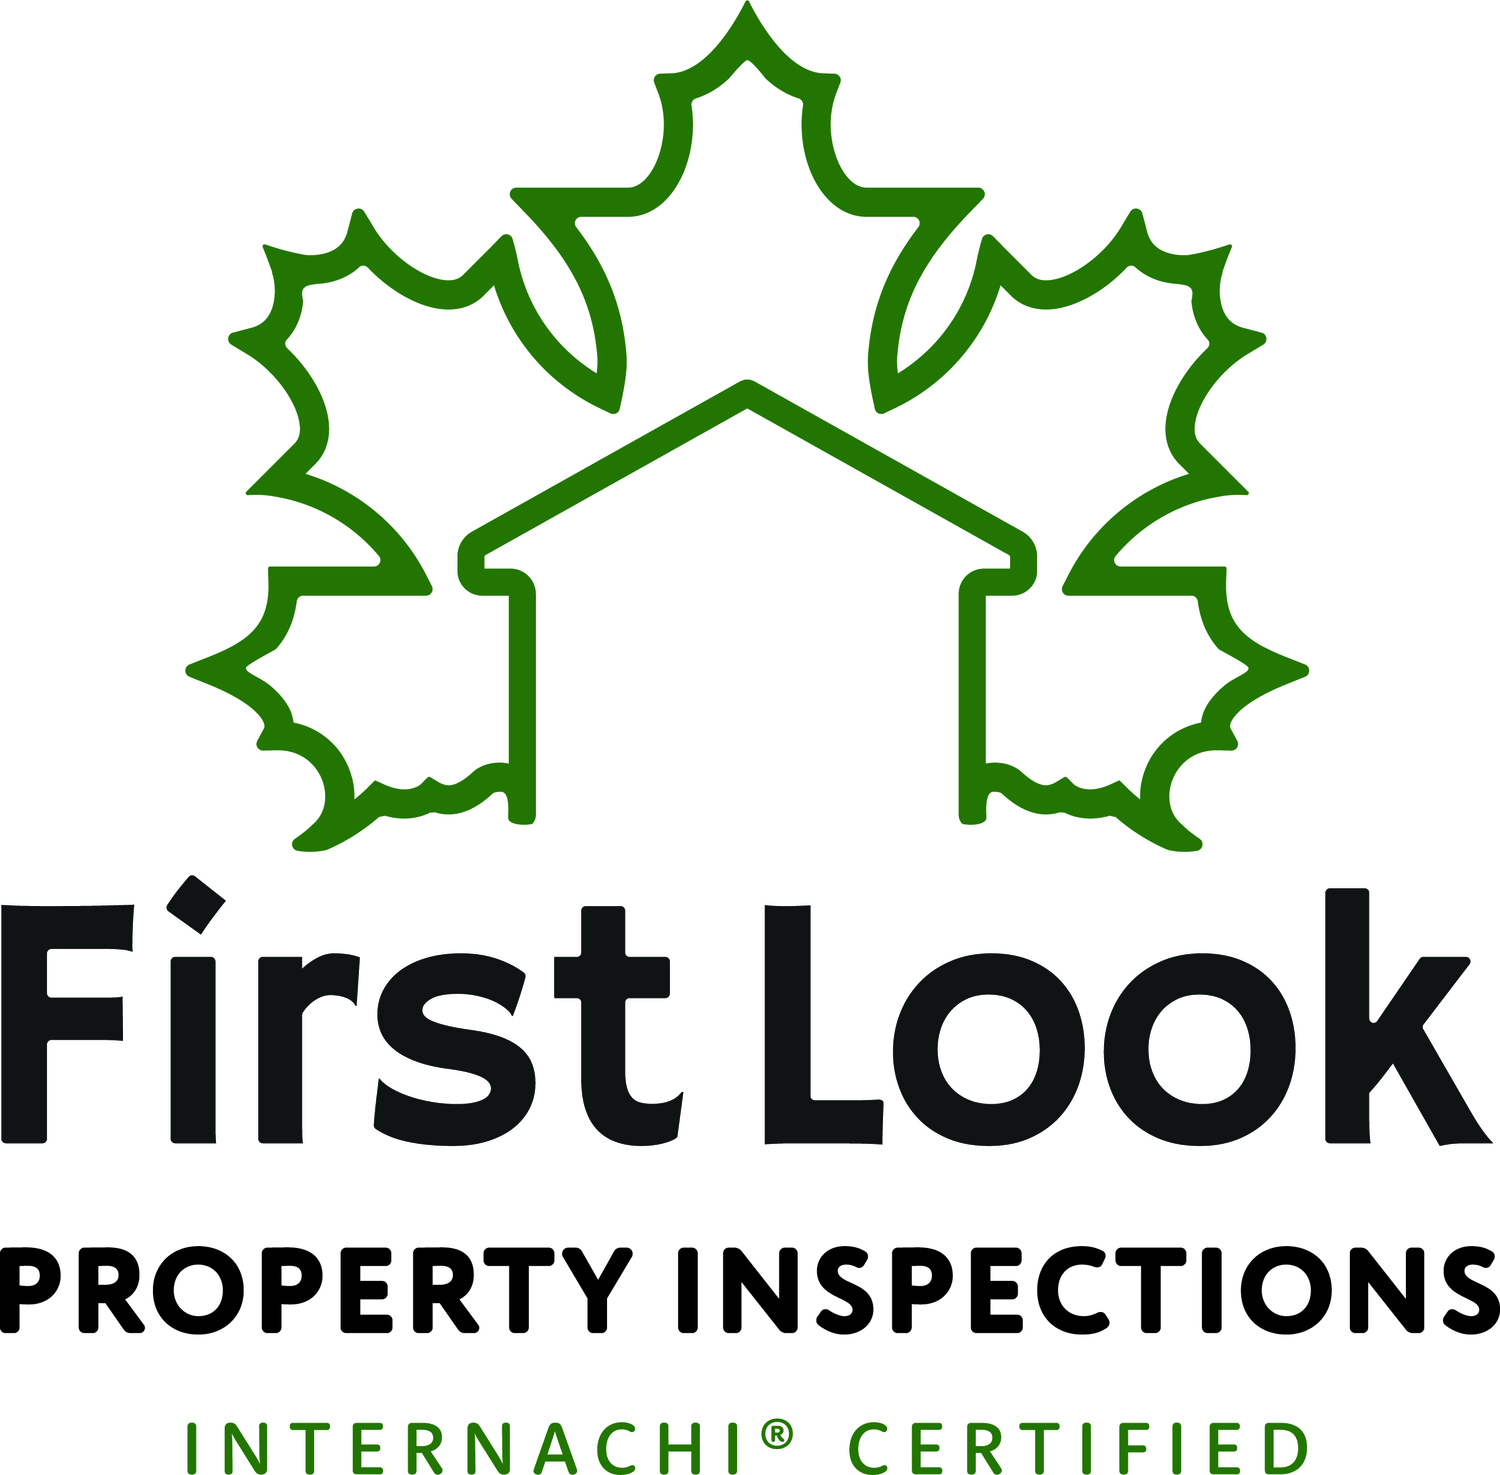 Firstlookhome cottageinspections logo %281%29